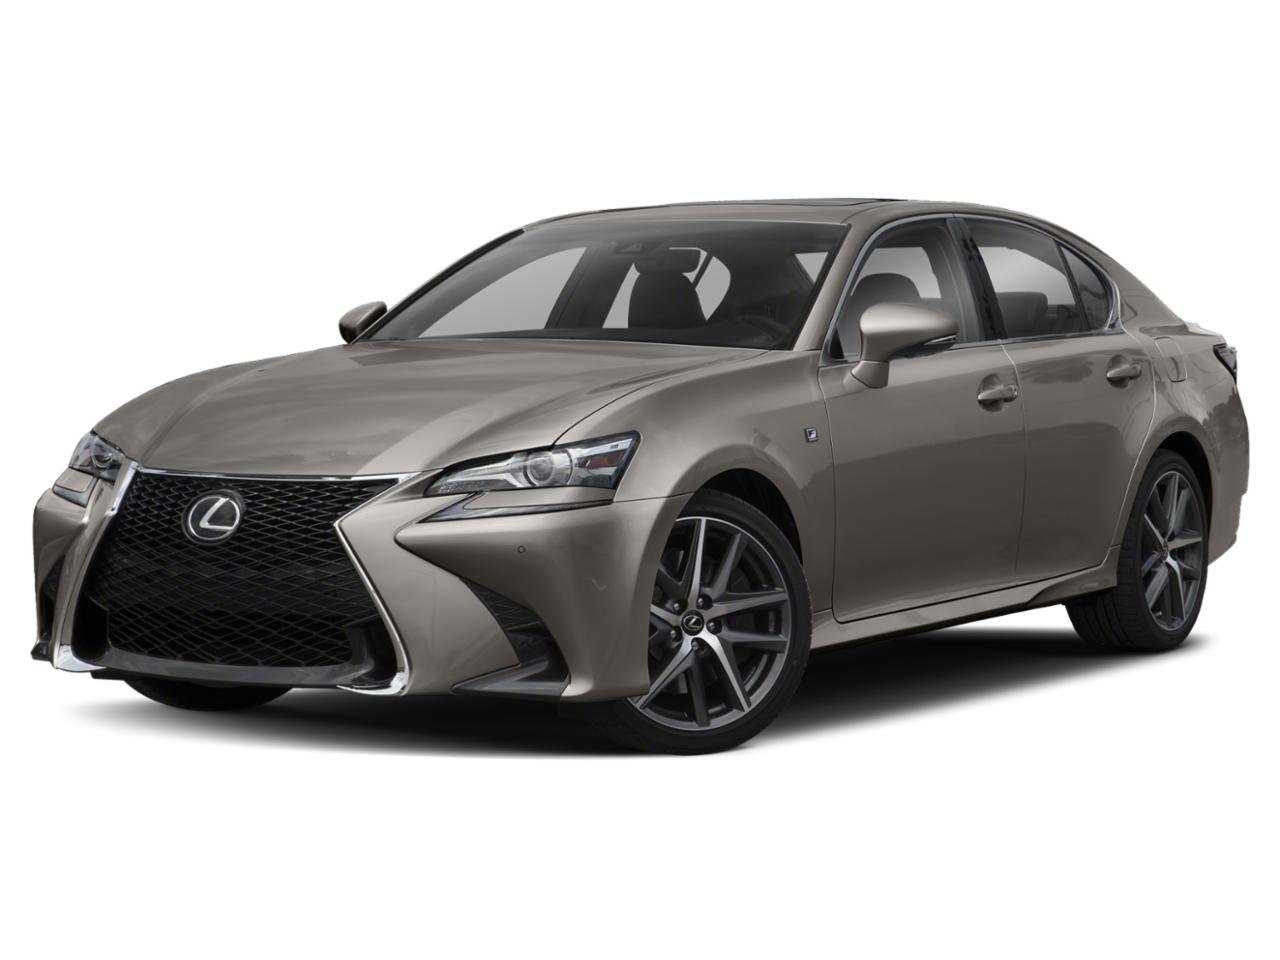 2020 Lexus GS Vehicle Photo in Dallas, TX 75235